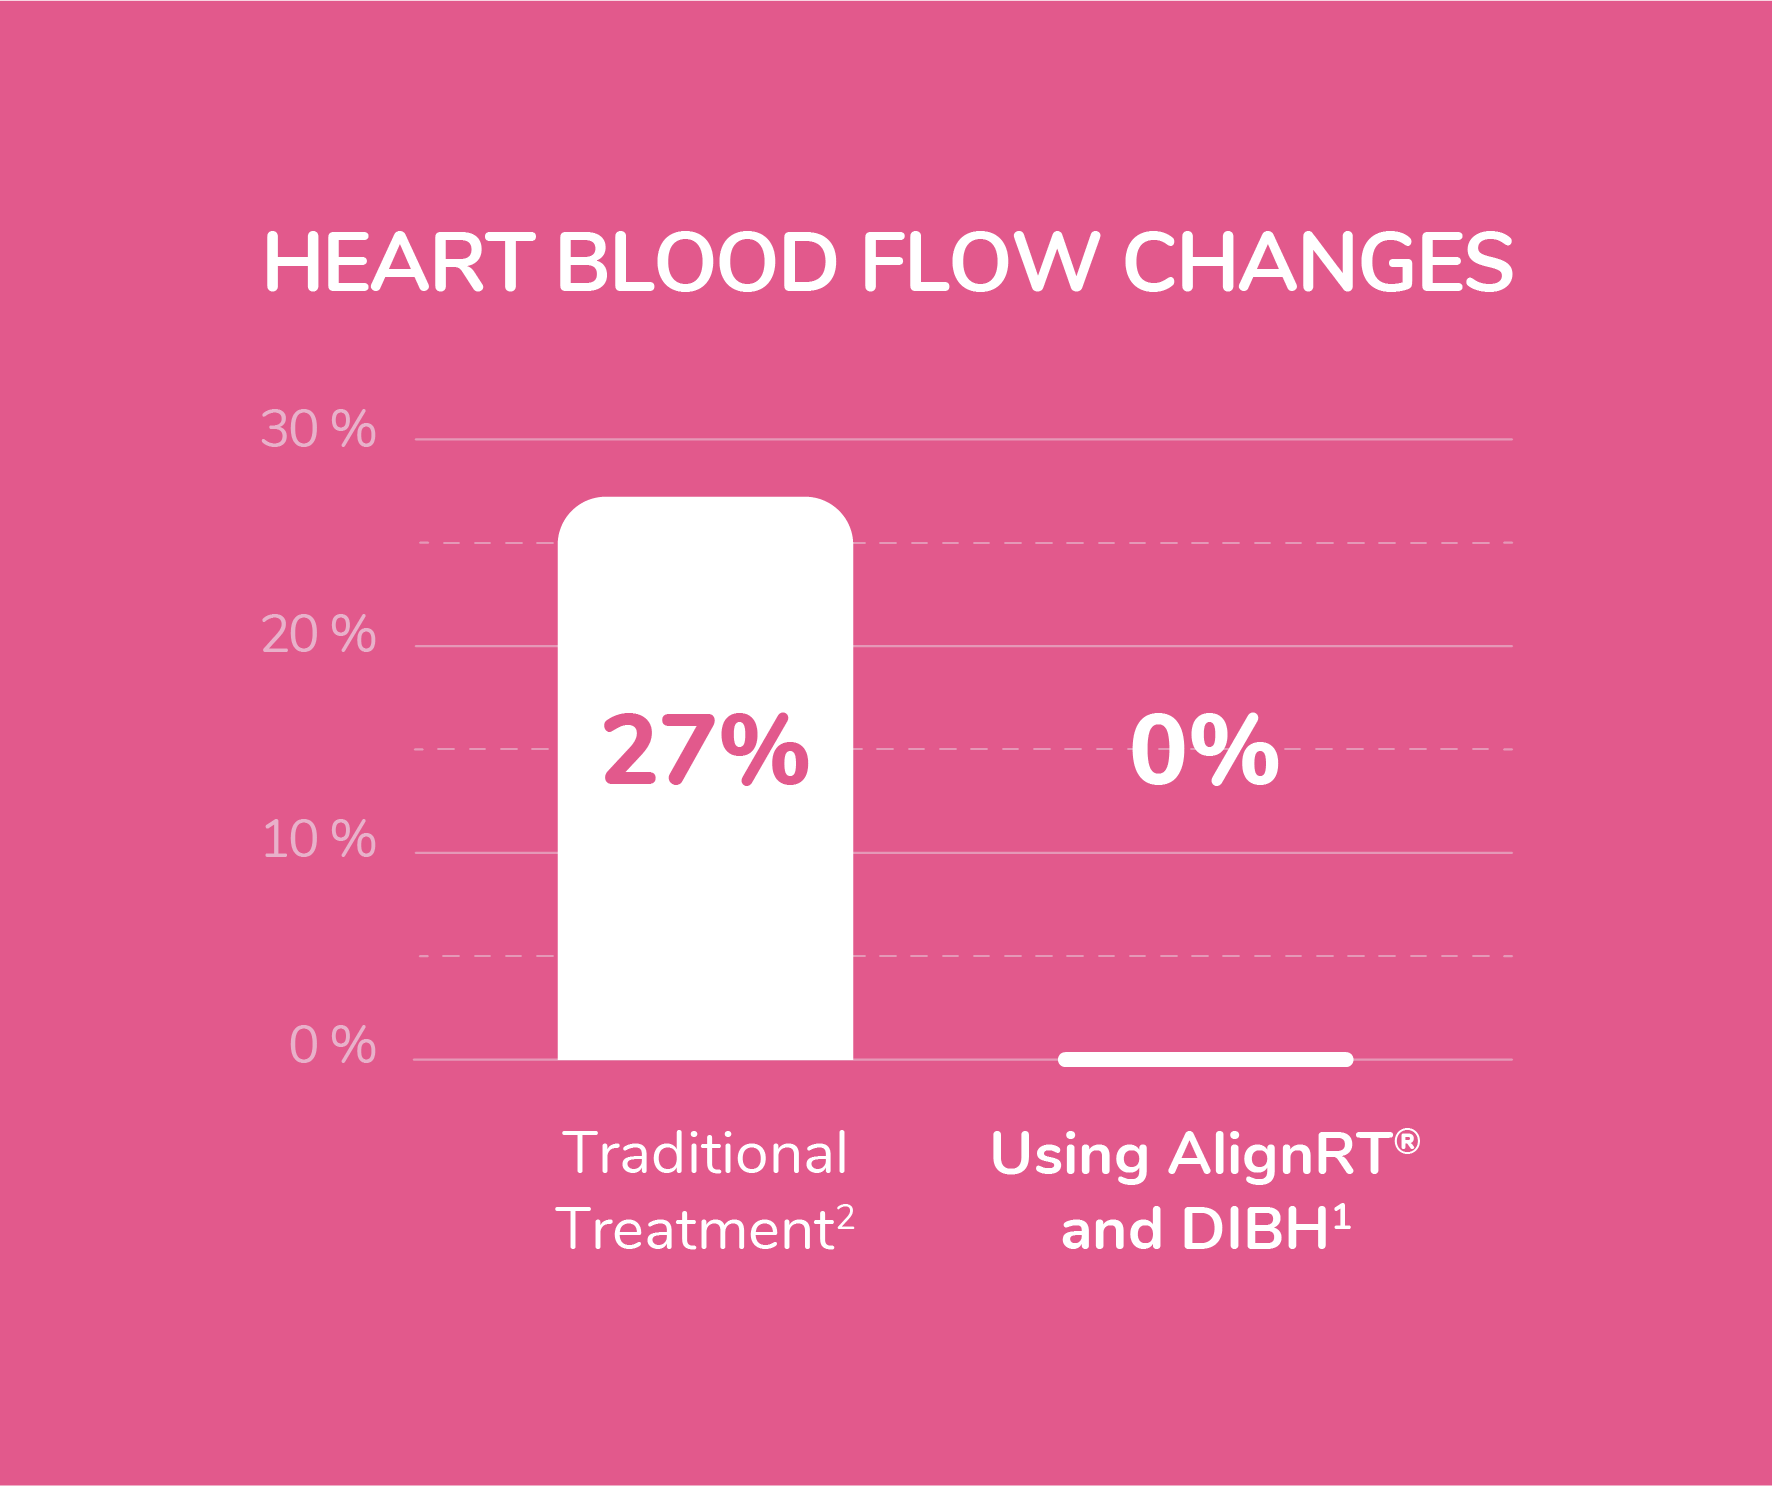 Heart blood flow changes